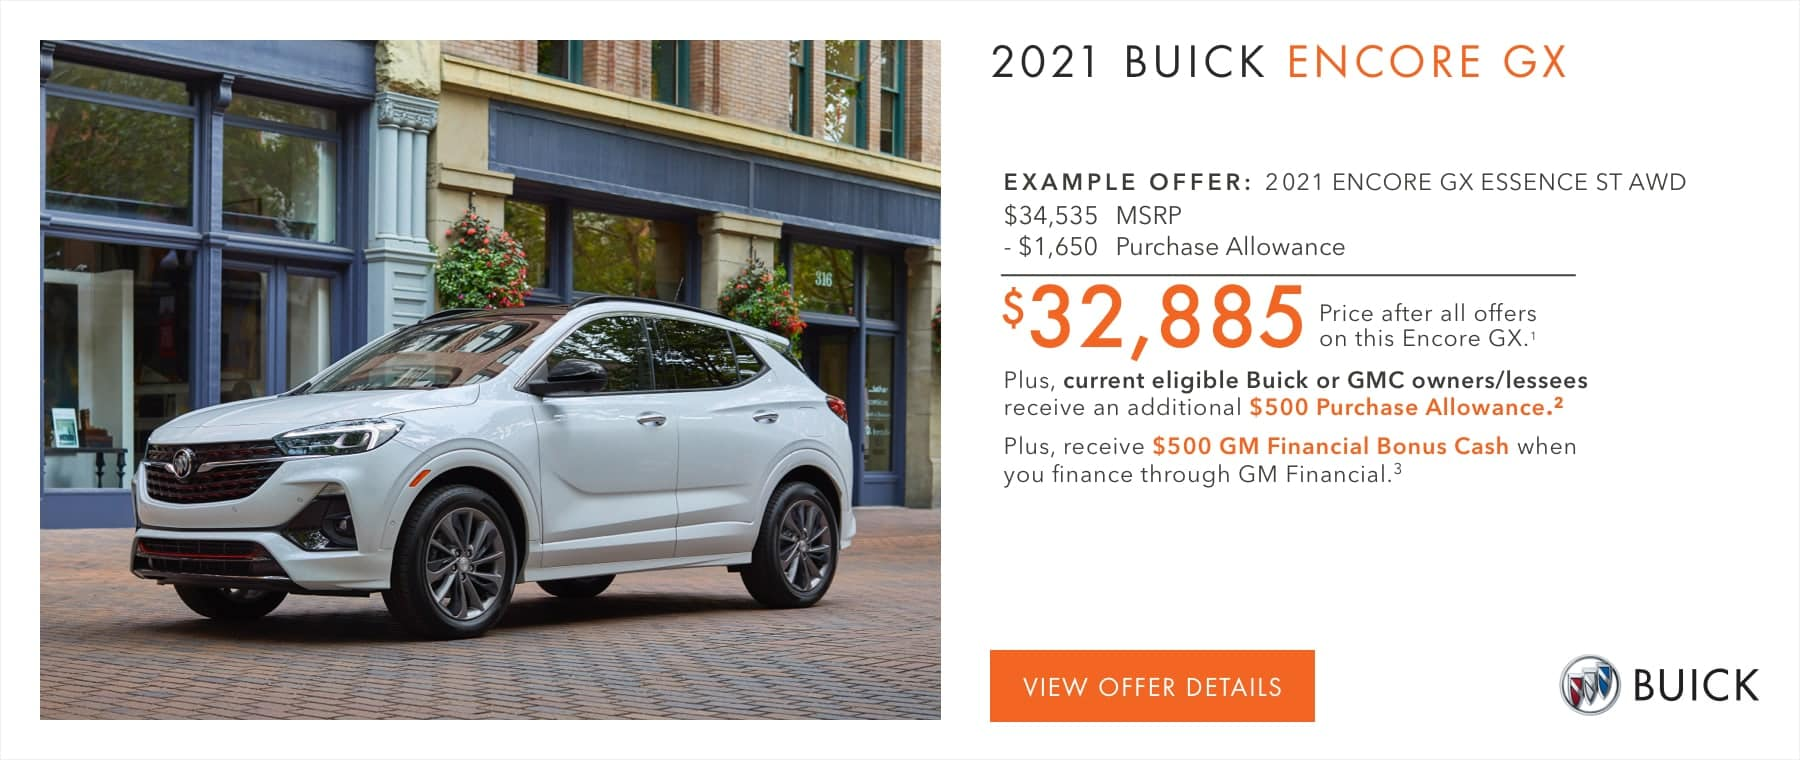 EXAMPLE OFFER: 2021 ENCORE GX ESSENCE ST AWD $34,535 MSRP -$1,650 Purchase Allowance $32,885 Price after all offers on this Encore GX.2 Plus, current eligible Buick or GMC owners/lessees receive an additional $500 Purchase Allowance.2 Plus, receive $500 GM Financial Bonus Cash when you finance through GM Financial.3